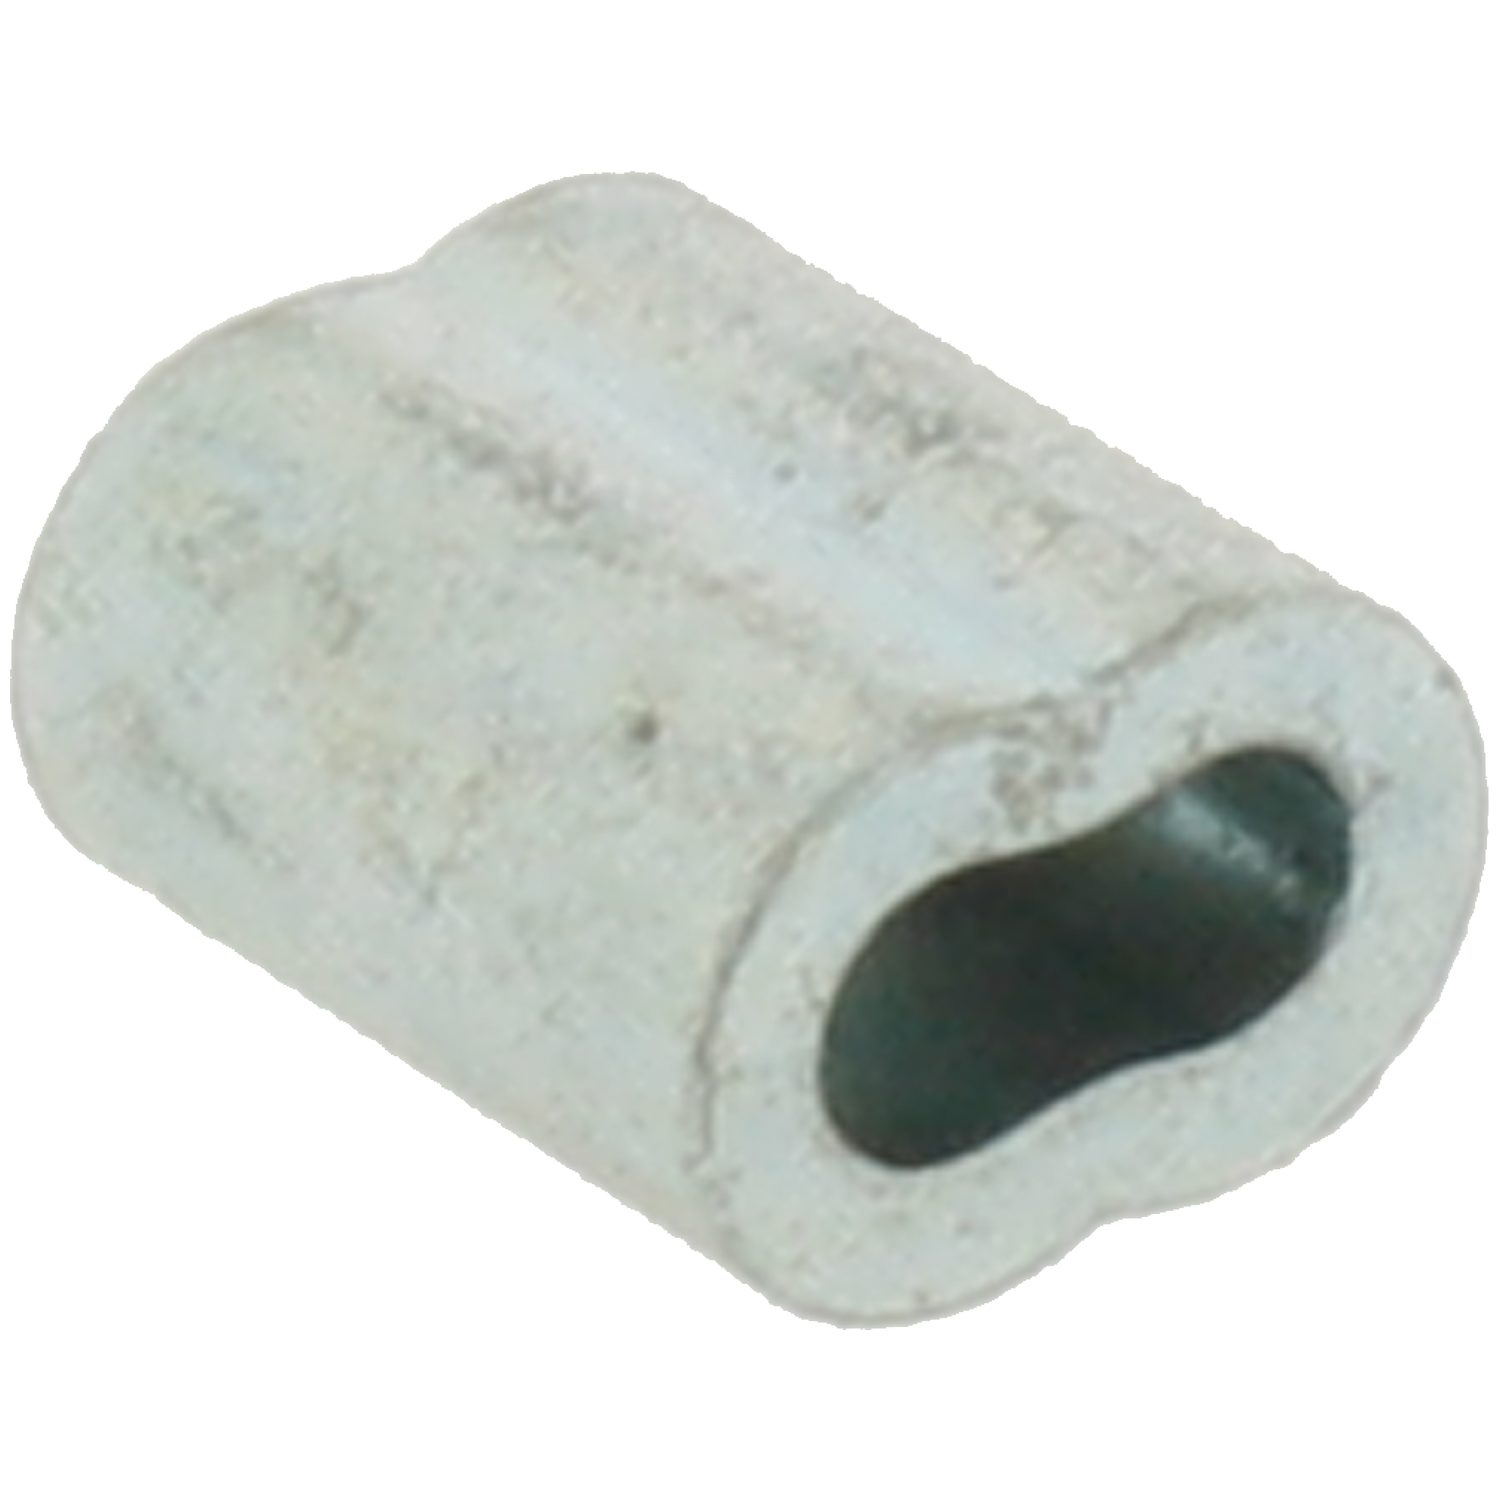 R1099 - Cable Crimp Bushings